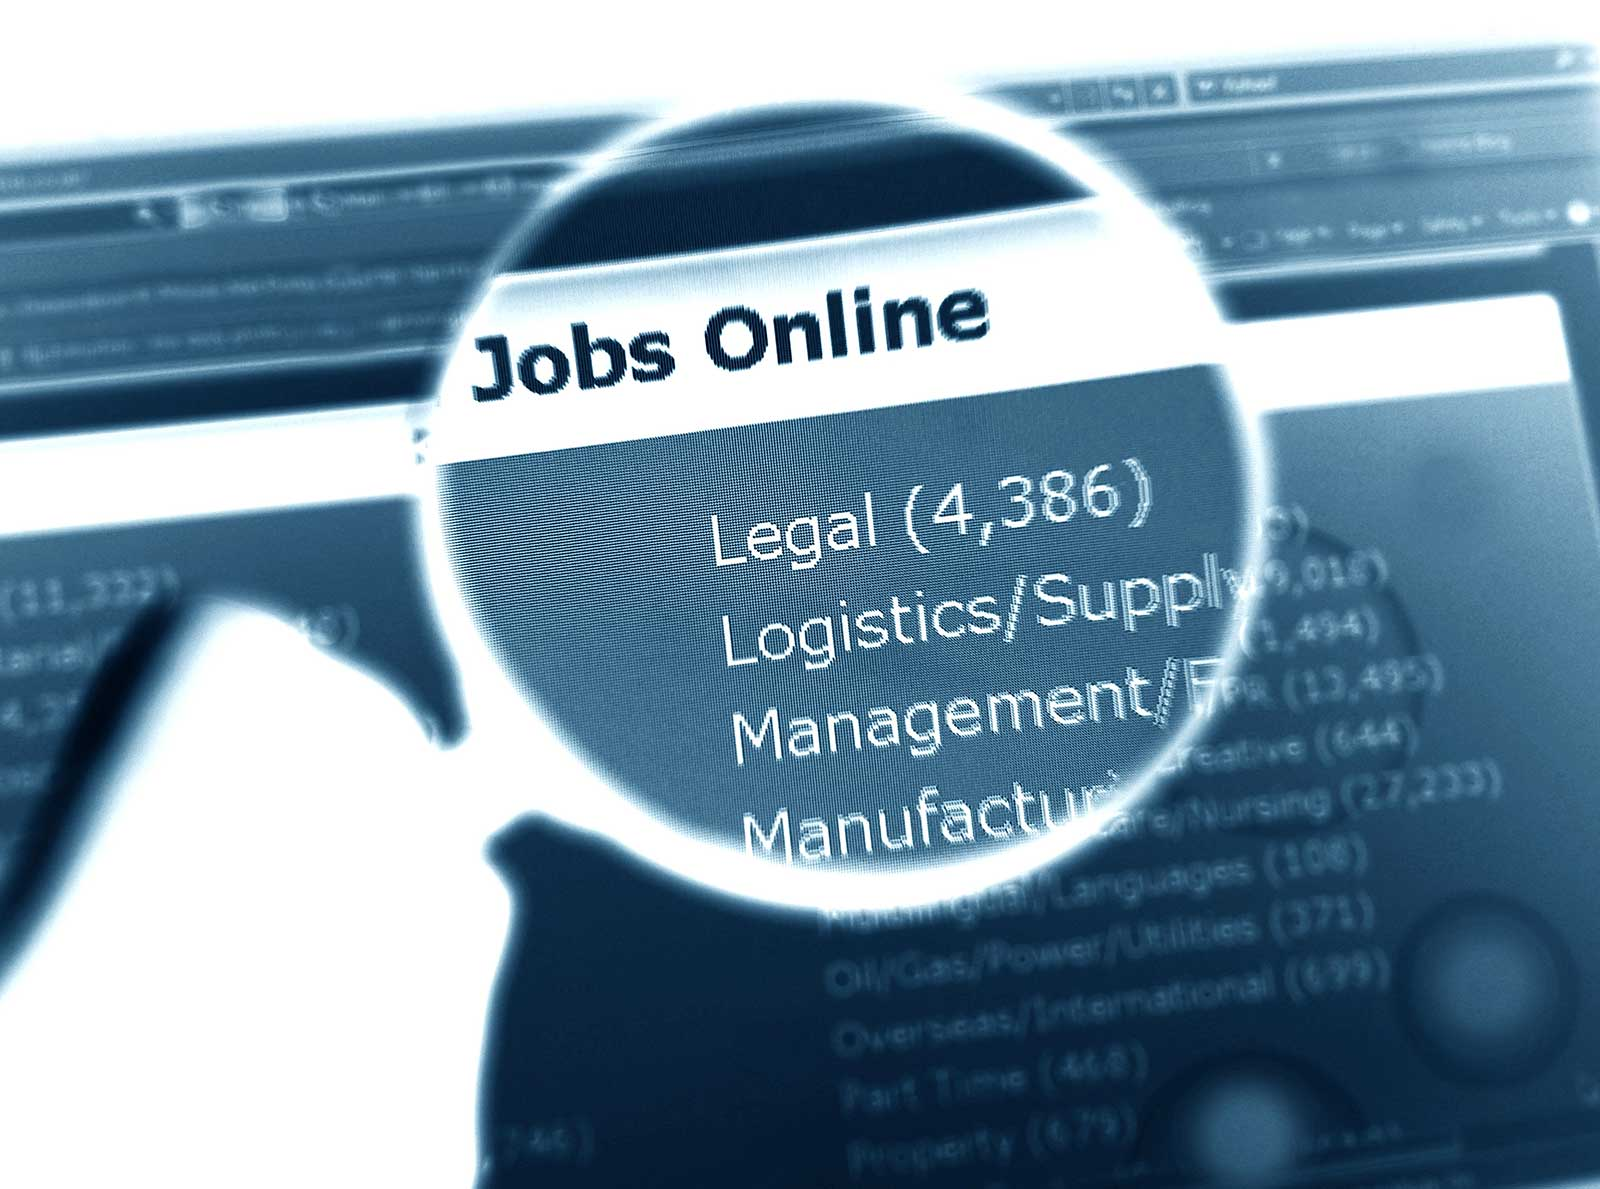 Benefits of Job Portal for Seekers and Employers